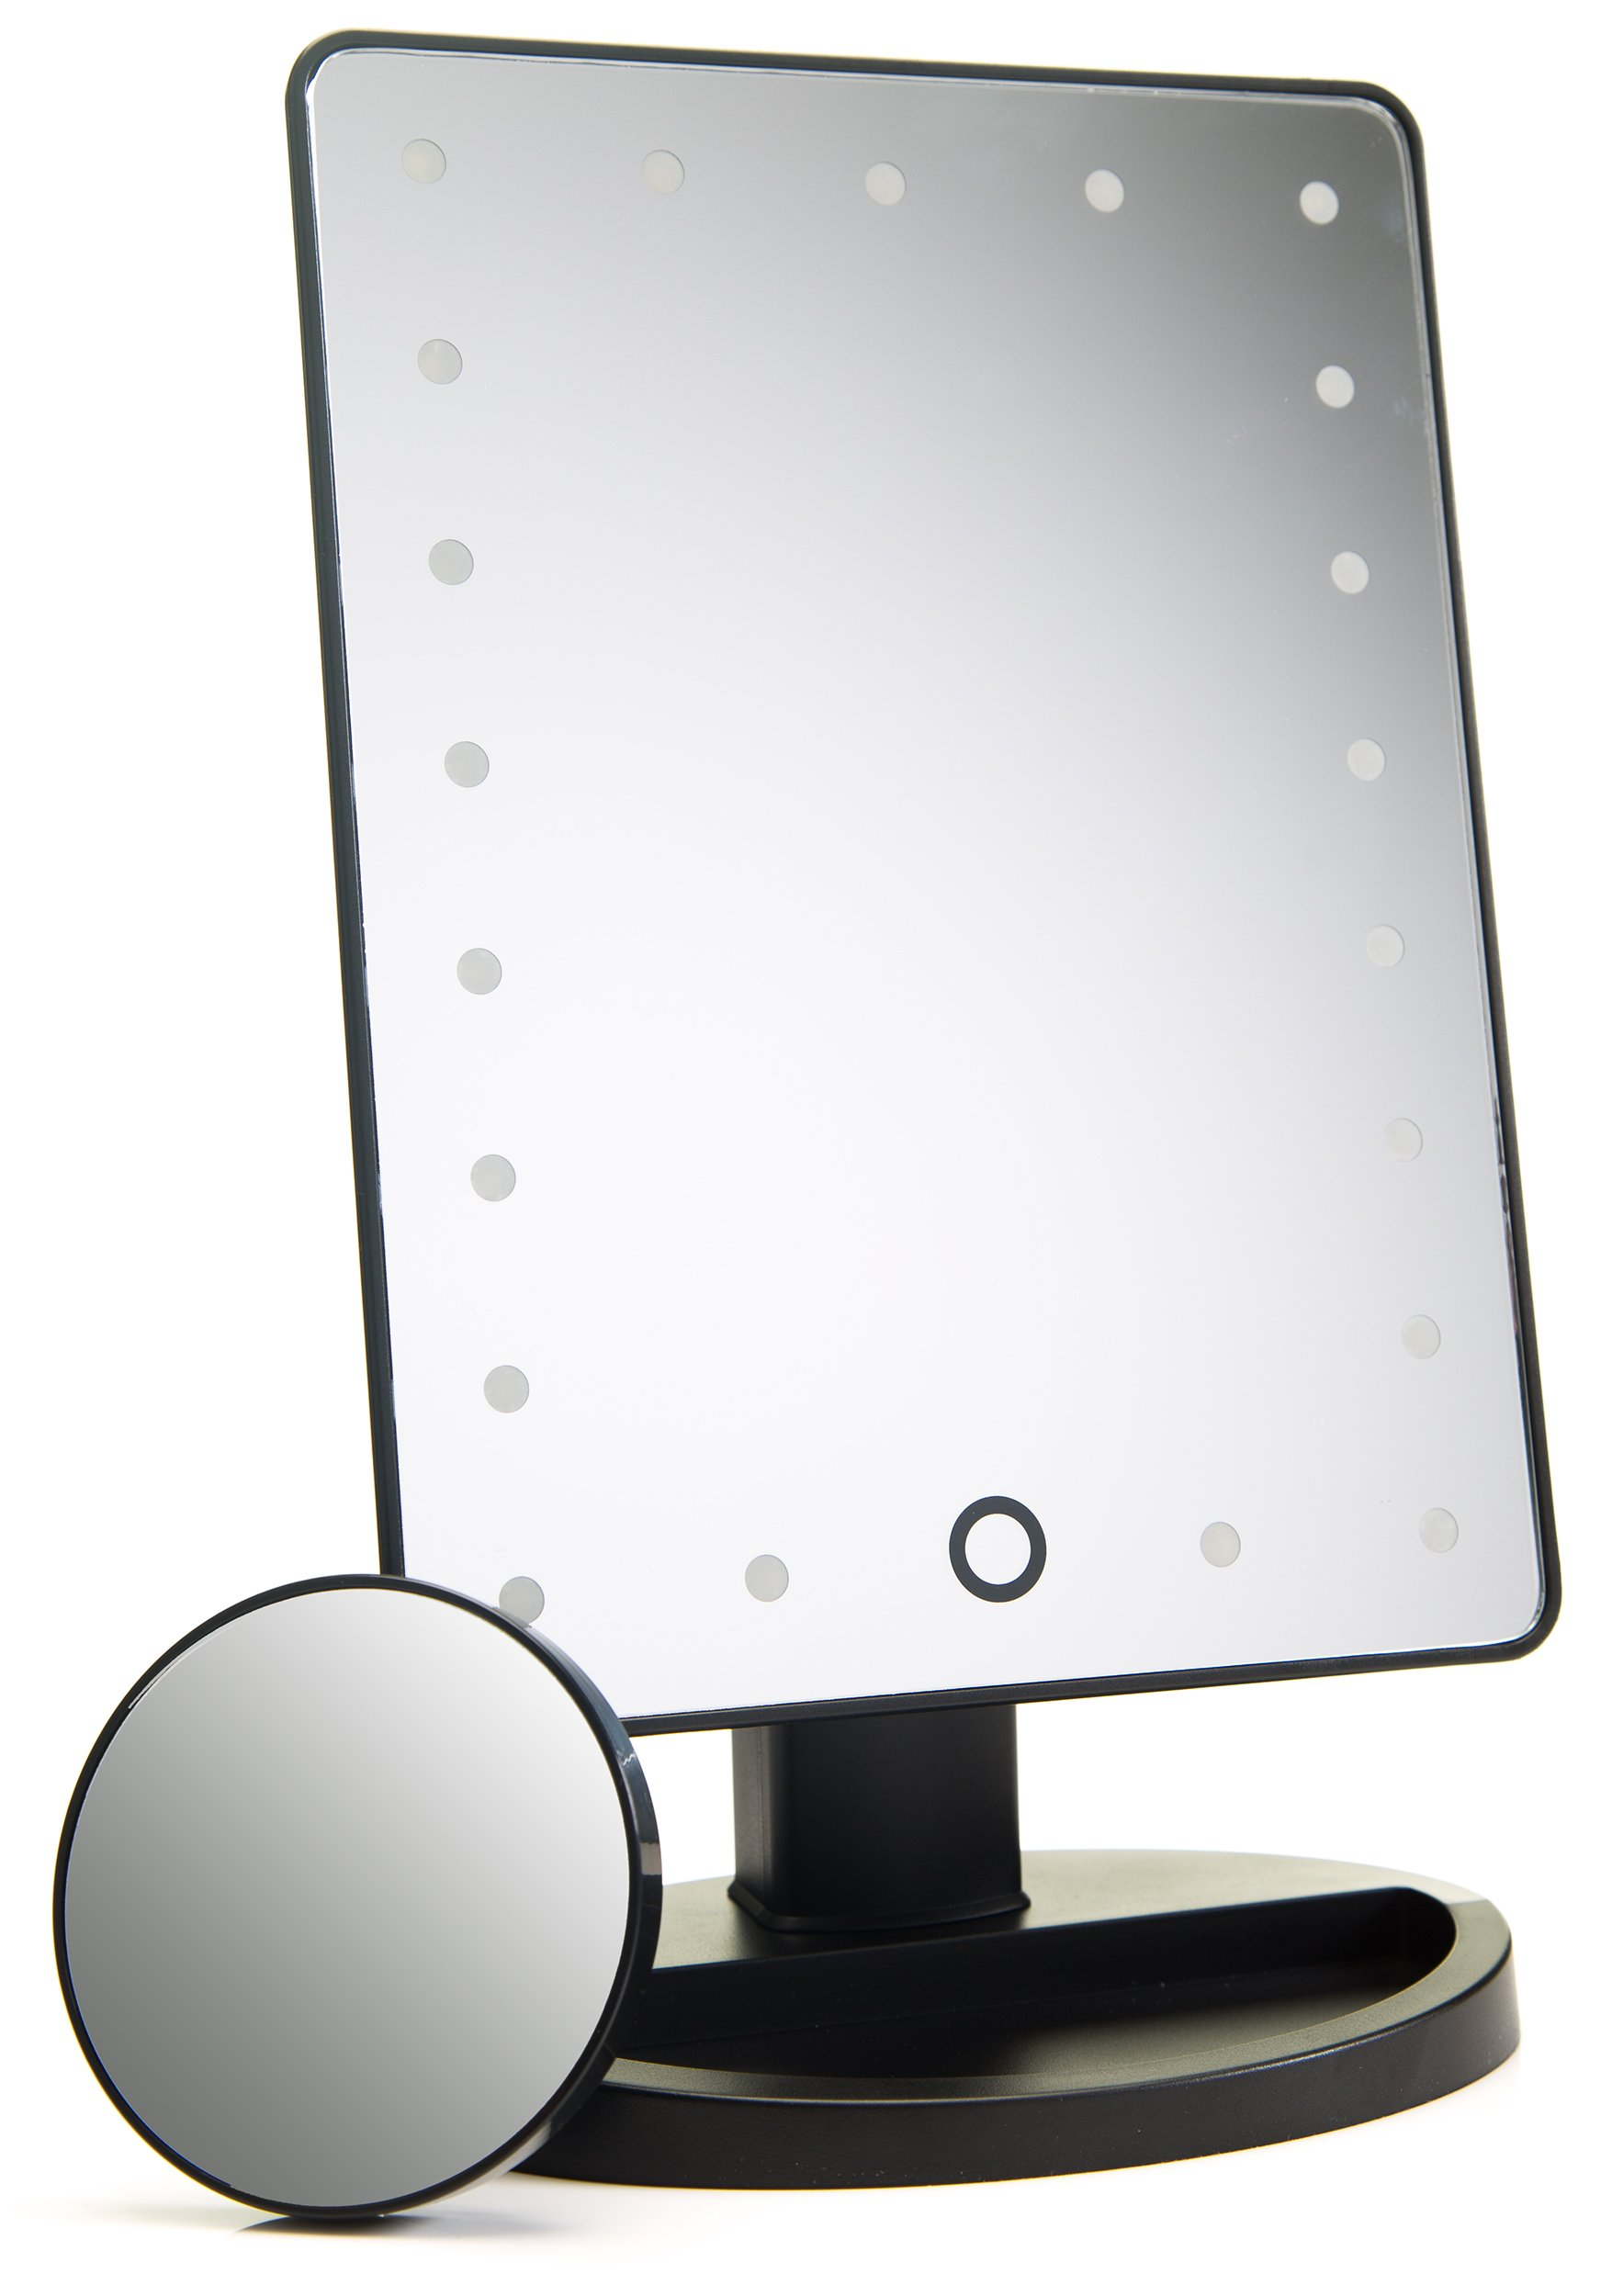 Natural Daylight Lighted Makeup Mirror / Vanity Mirror with Touch Screen Dimming, Detachable 10X Magnification Spot Mirror, Portable Convenience and High Definition Clarity Cosmetic Mirror by Absolutely Lush